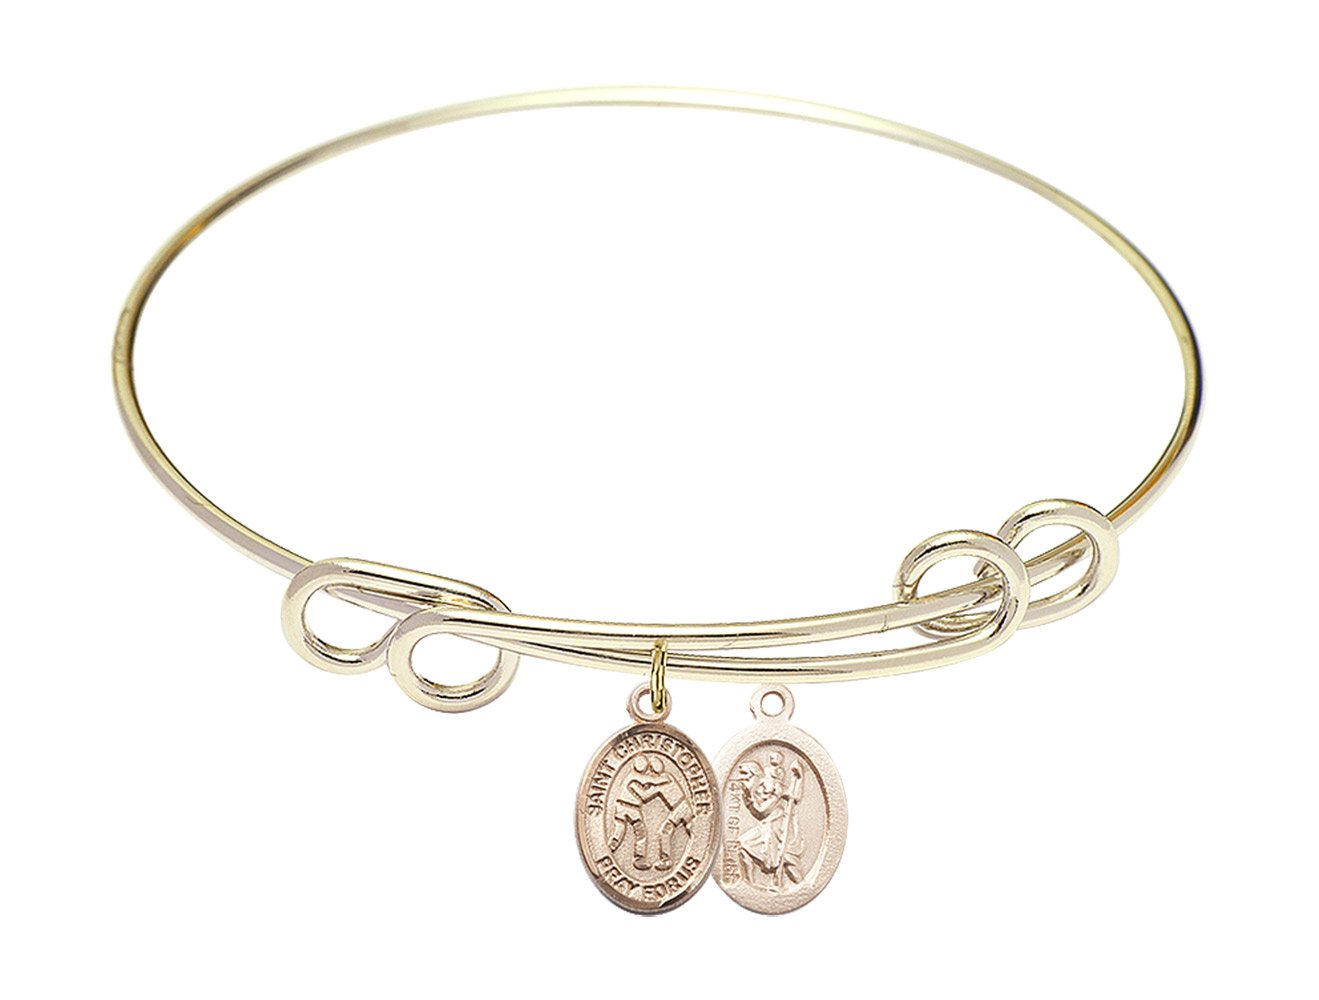 St. Christopher Wrestling Charm On A 8 1/2 Inch Round Double Loop Bangle Bracelet